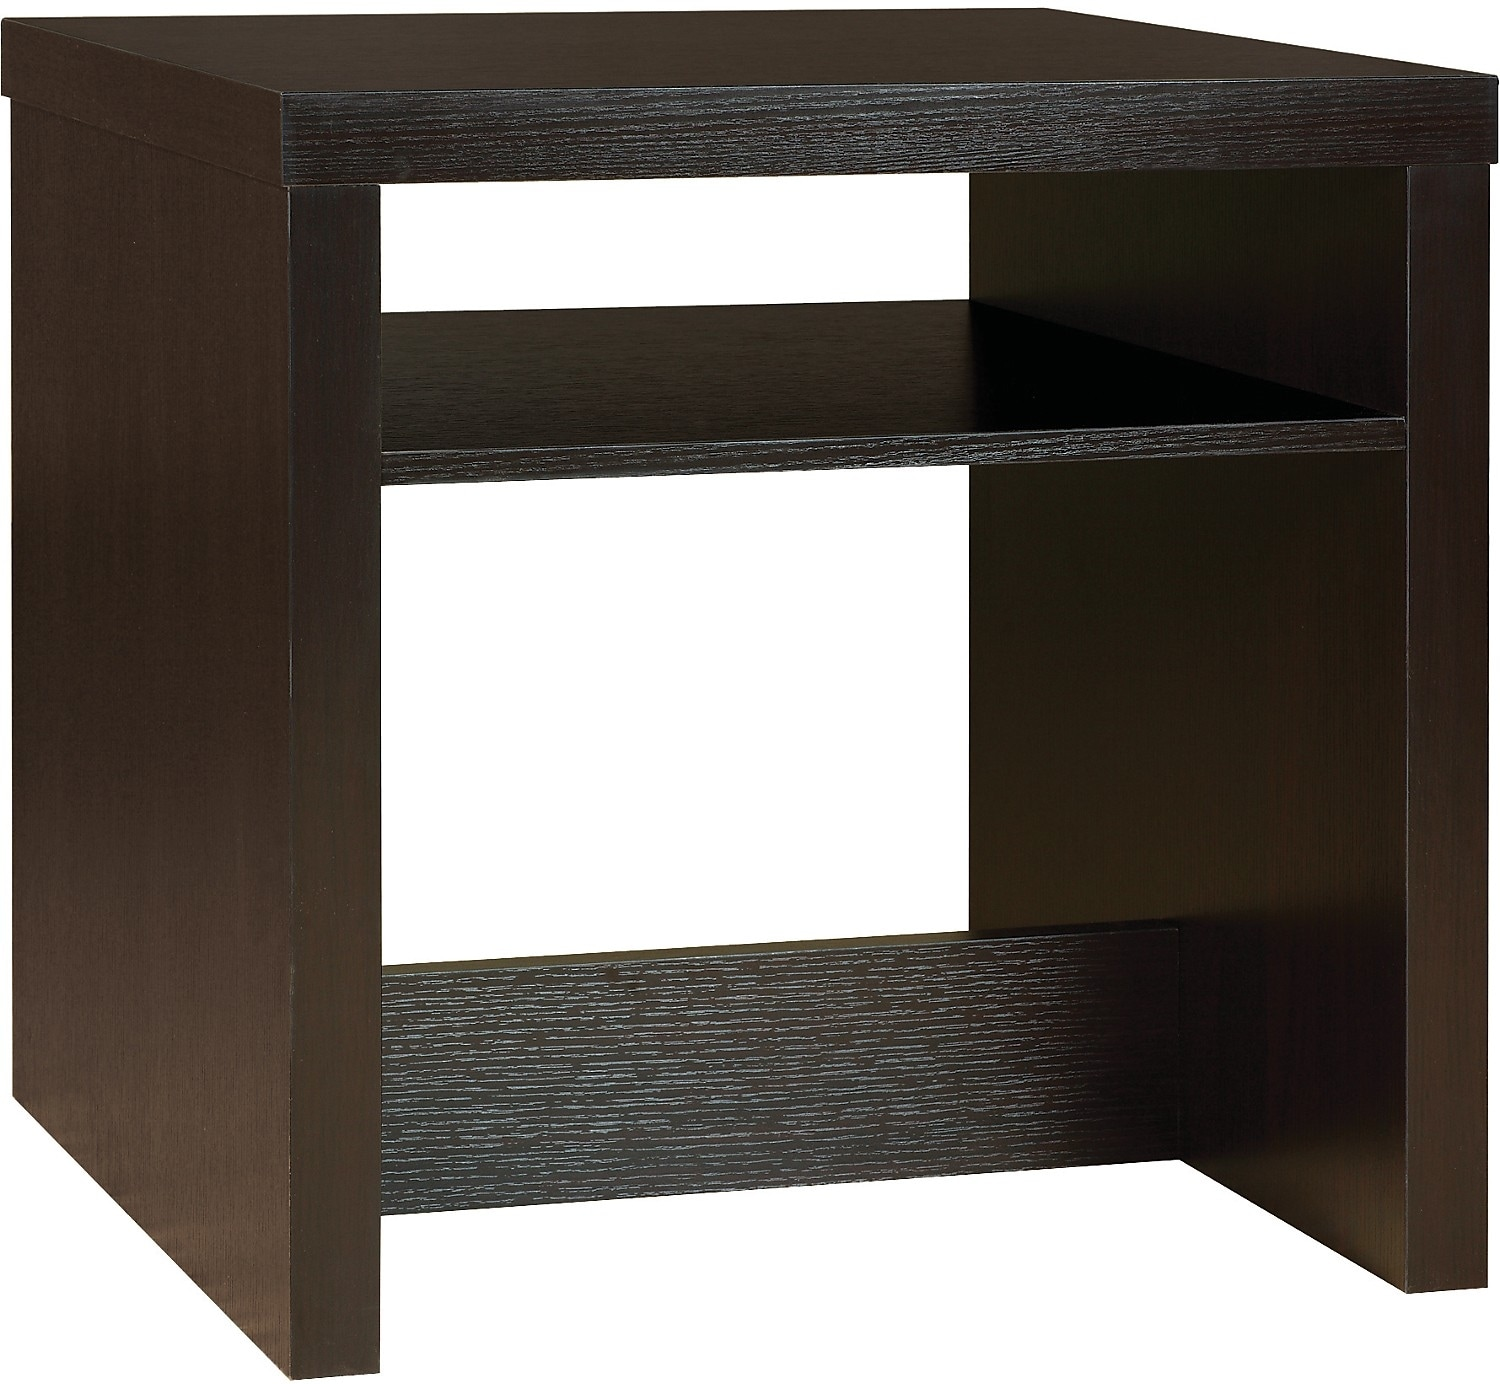 Glendale End Table - Espresso